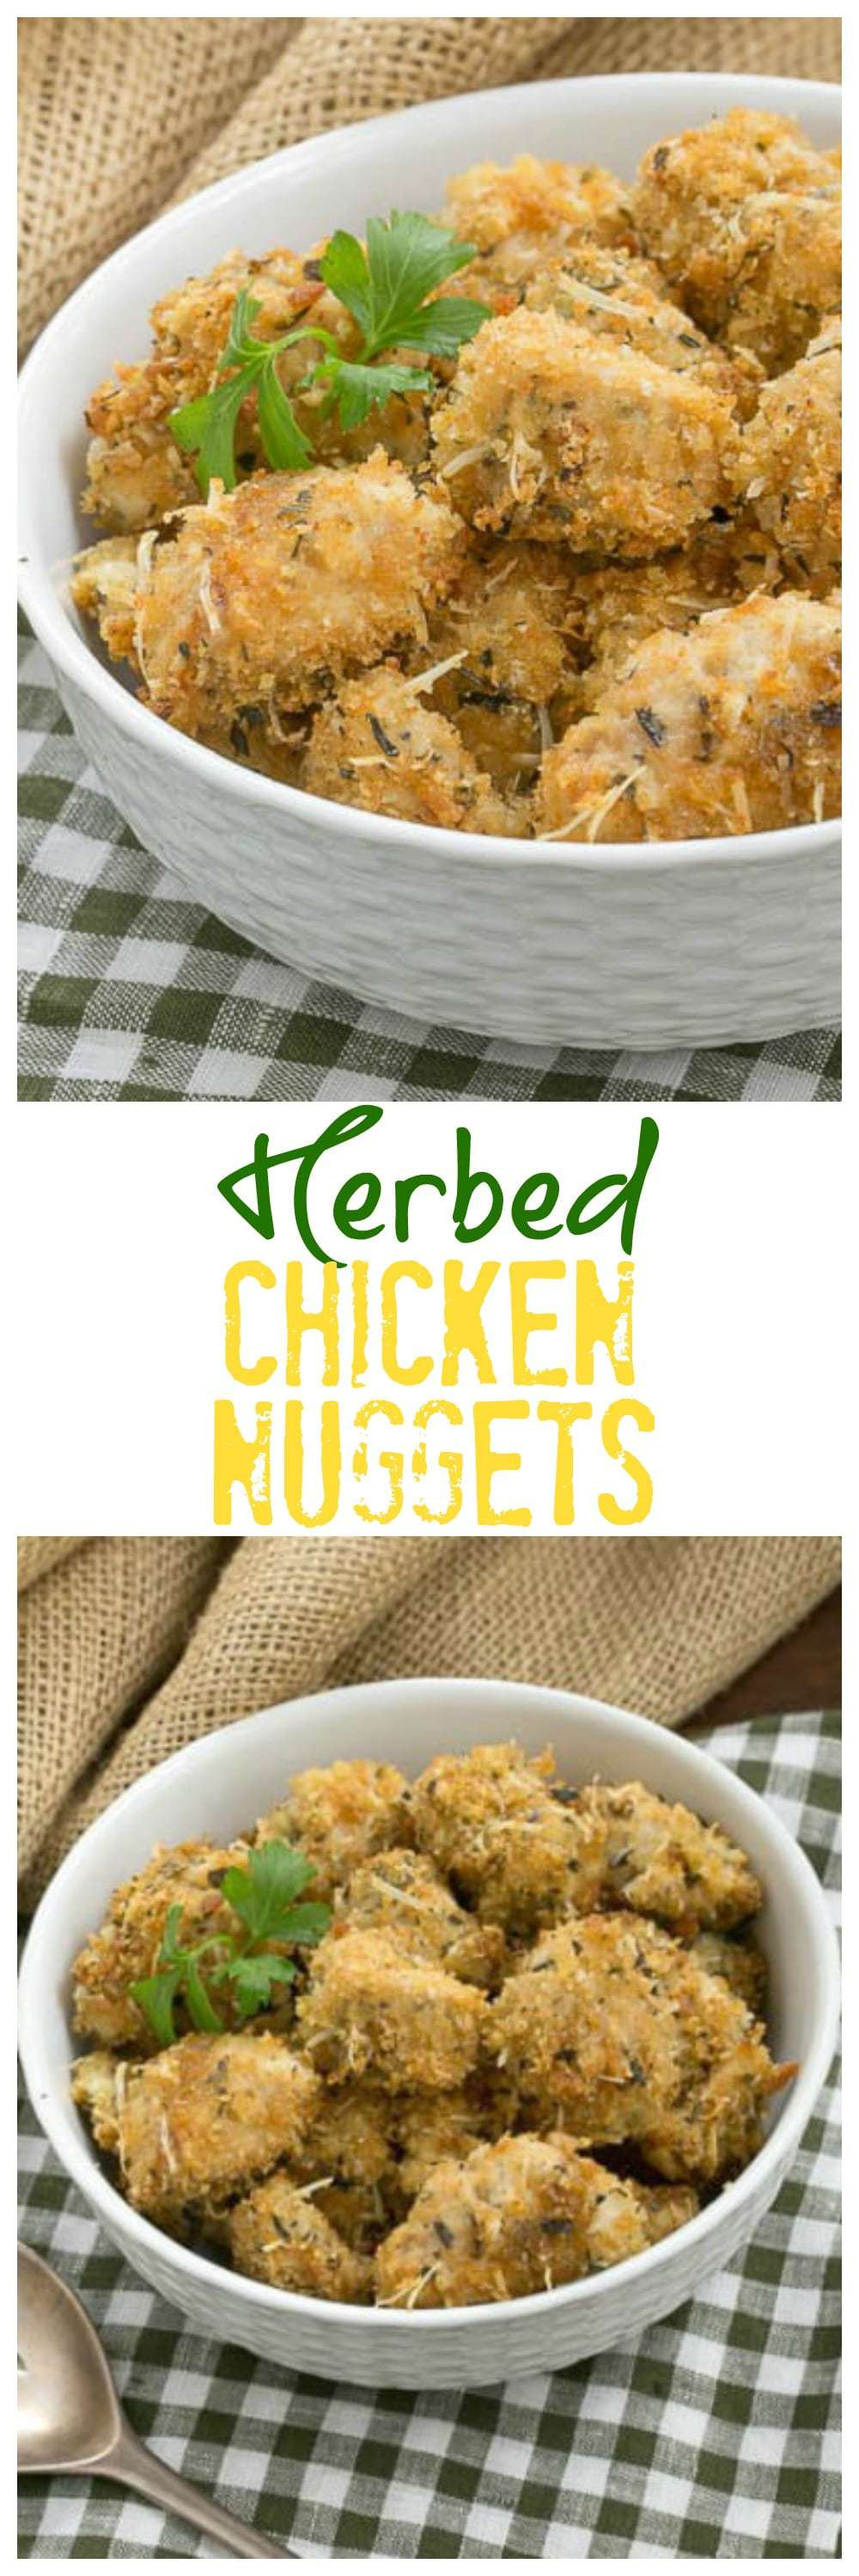 Herbed Chicken Nuggets - Ditch the drive through and make homemade chicken nuggets for your family! #chickennuggets #bakedchickennuggets #copycatchickennuggets #homemadechickennuggets